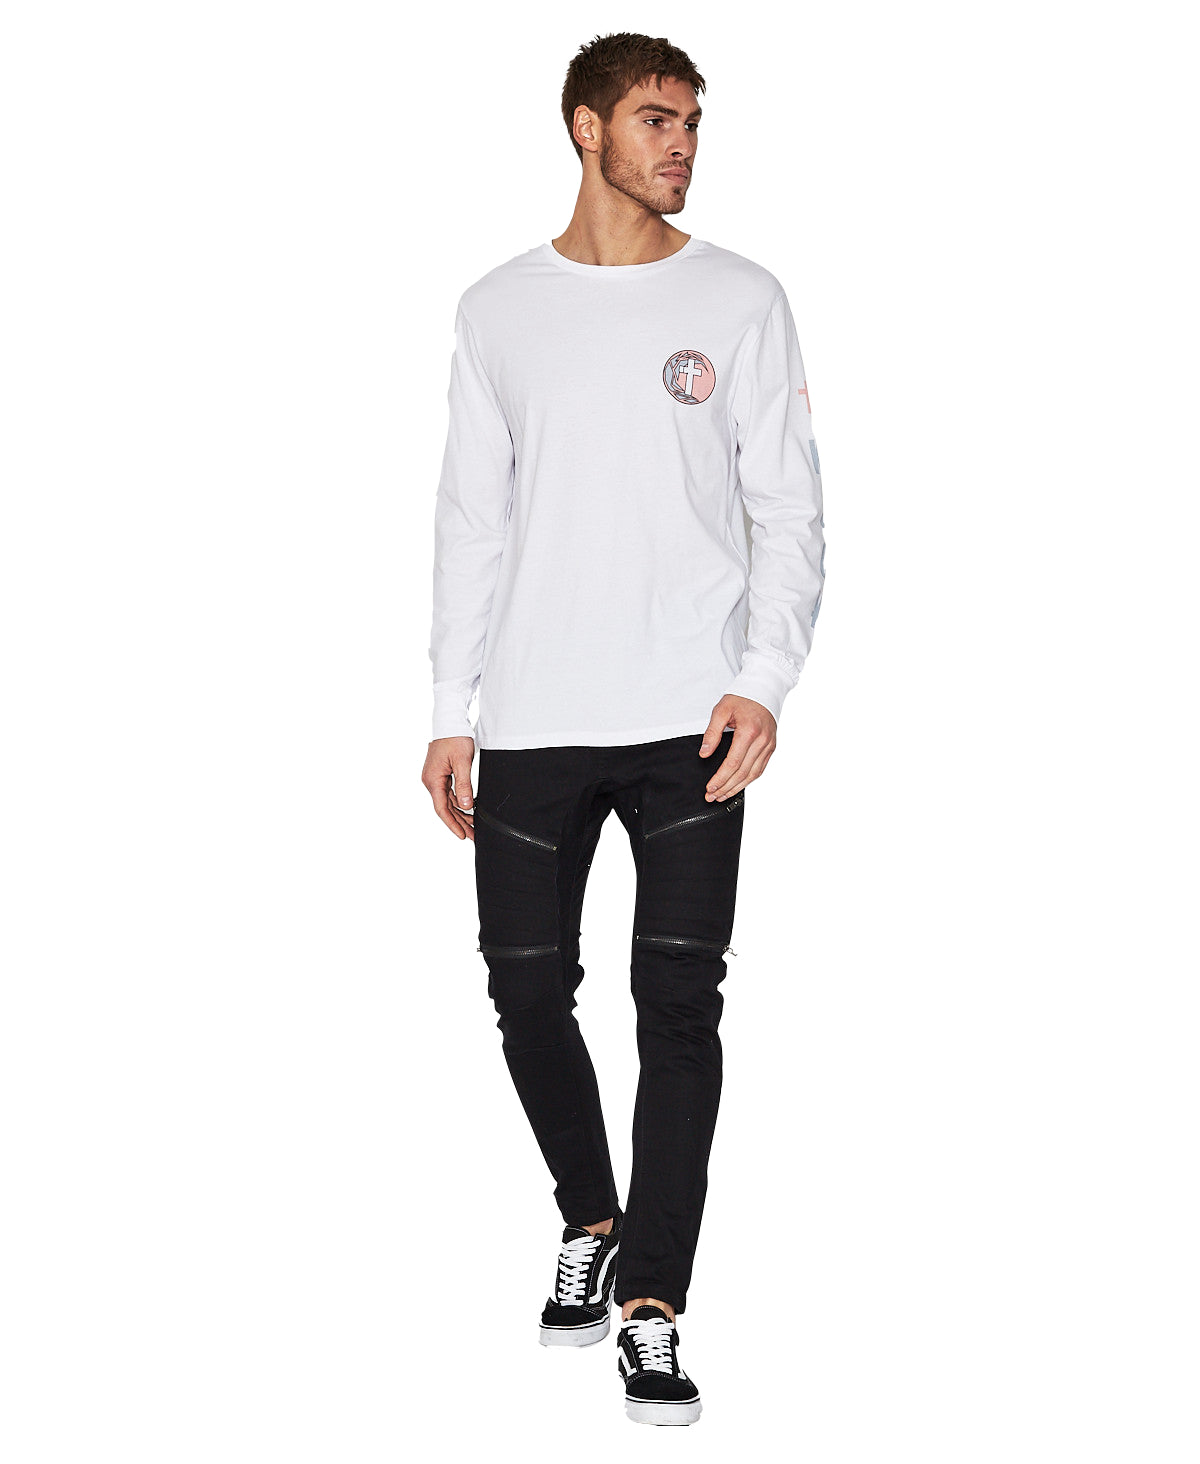 Desert Sun Long Sleeve Tee - White